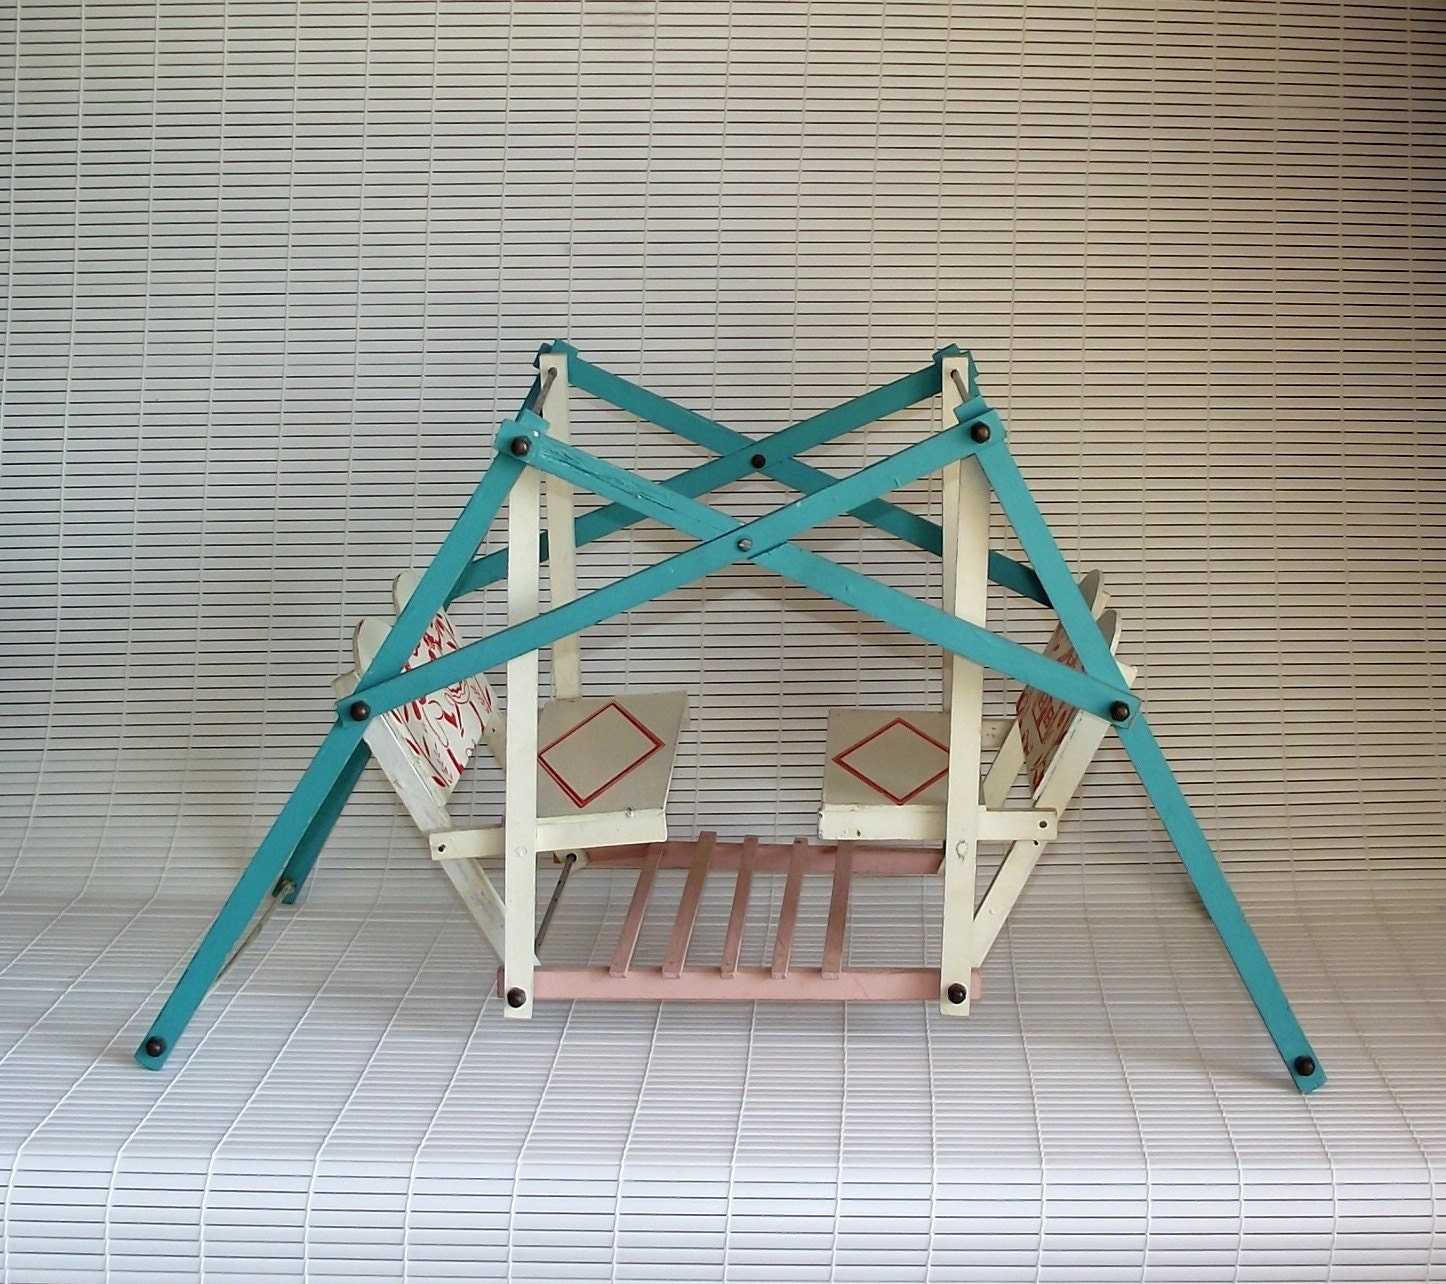 Vintage Swing Your Baby Wooden Toy Doll Glider Swing Set